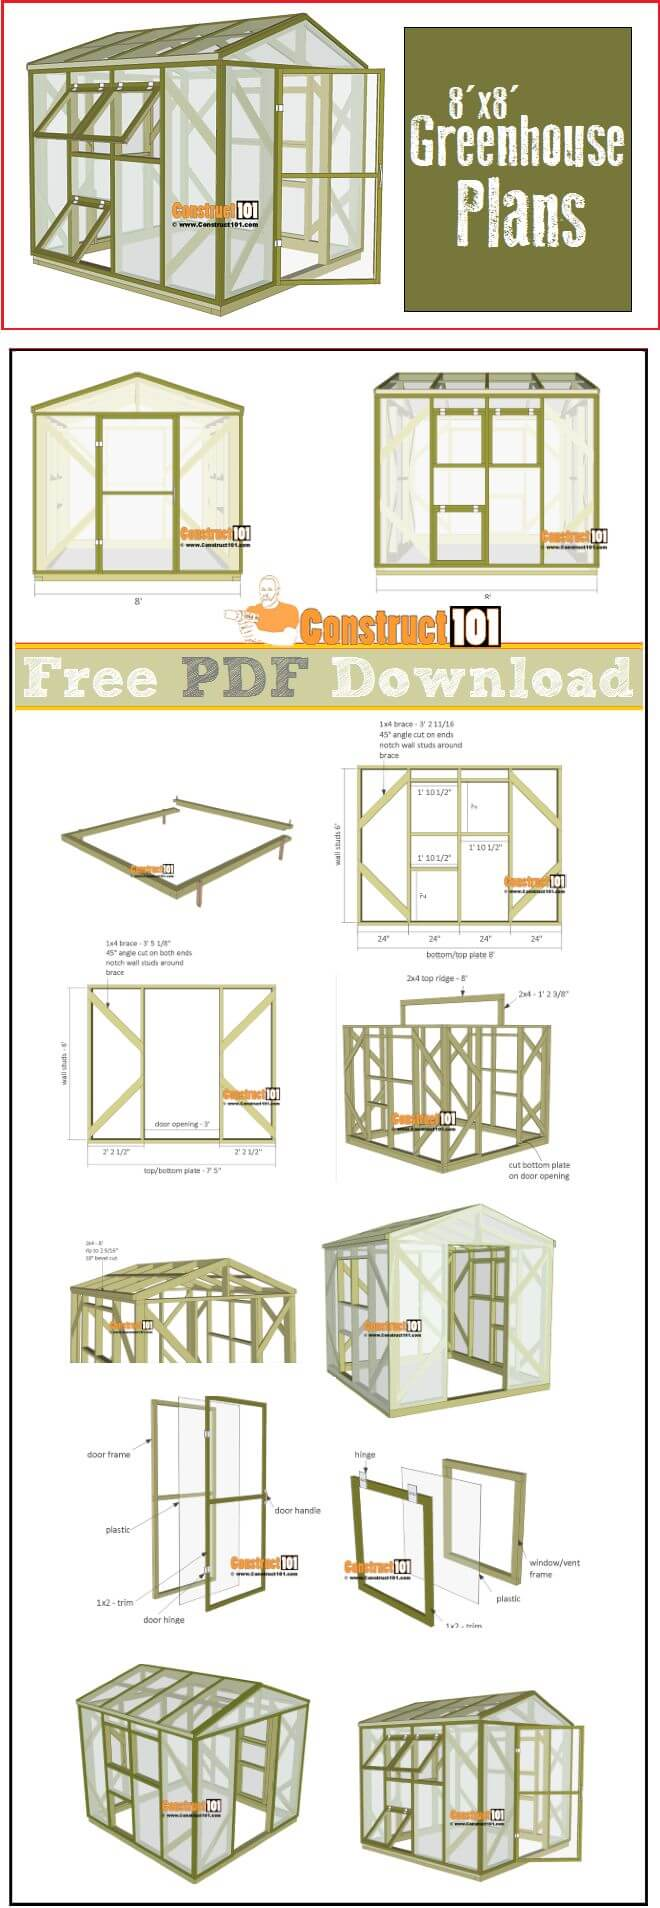 25 Best DIY Green House Ideas and Designs for 2018 Frame Greenhouse Plans Design on garden greenhouse plans, conduit greenhouse plans, small greenhouse plans, greenhouse blueprint plans, greenhouse construction plans, greenhouse building plans, greenhouse layout plans, in ground greenhouse plans, greenhouse floor plans, greenhouse kit plans, greenhouse plans wood, glass greenhouse plans, backyard greenhouse plans, hydroponic greenhouse plans, greenhouse box plans, greenhouse interior plans, easy greenhouse plans, greenhouse table plans, mini greenhouse plans, pvc greenhouse plans,